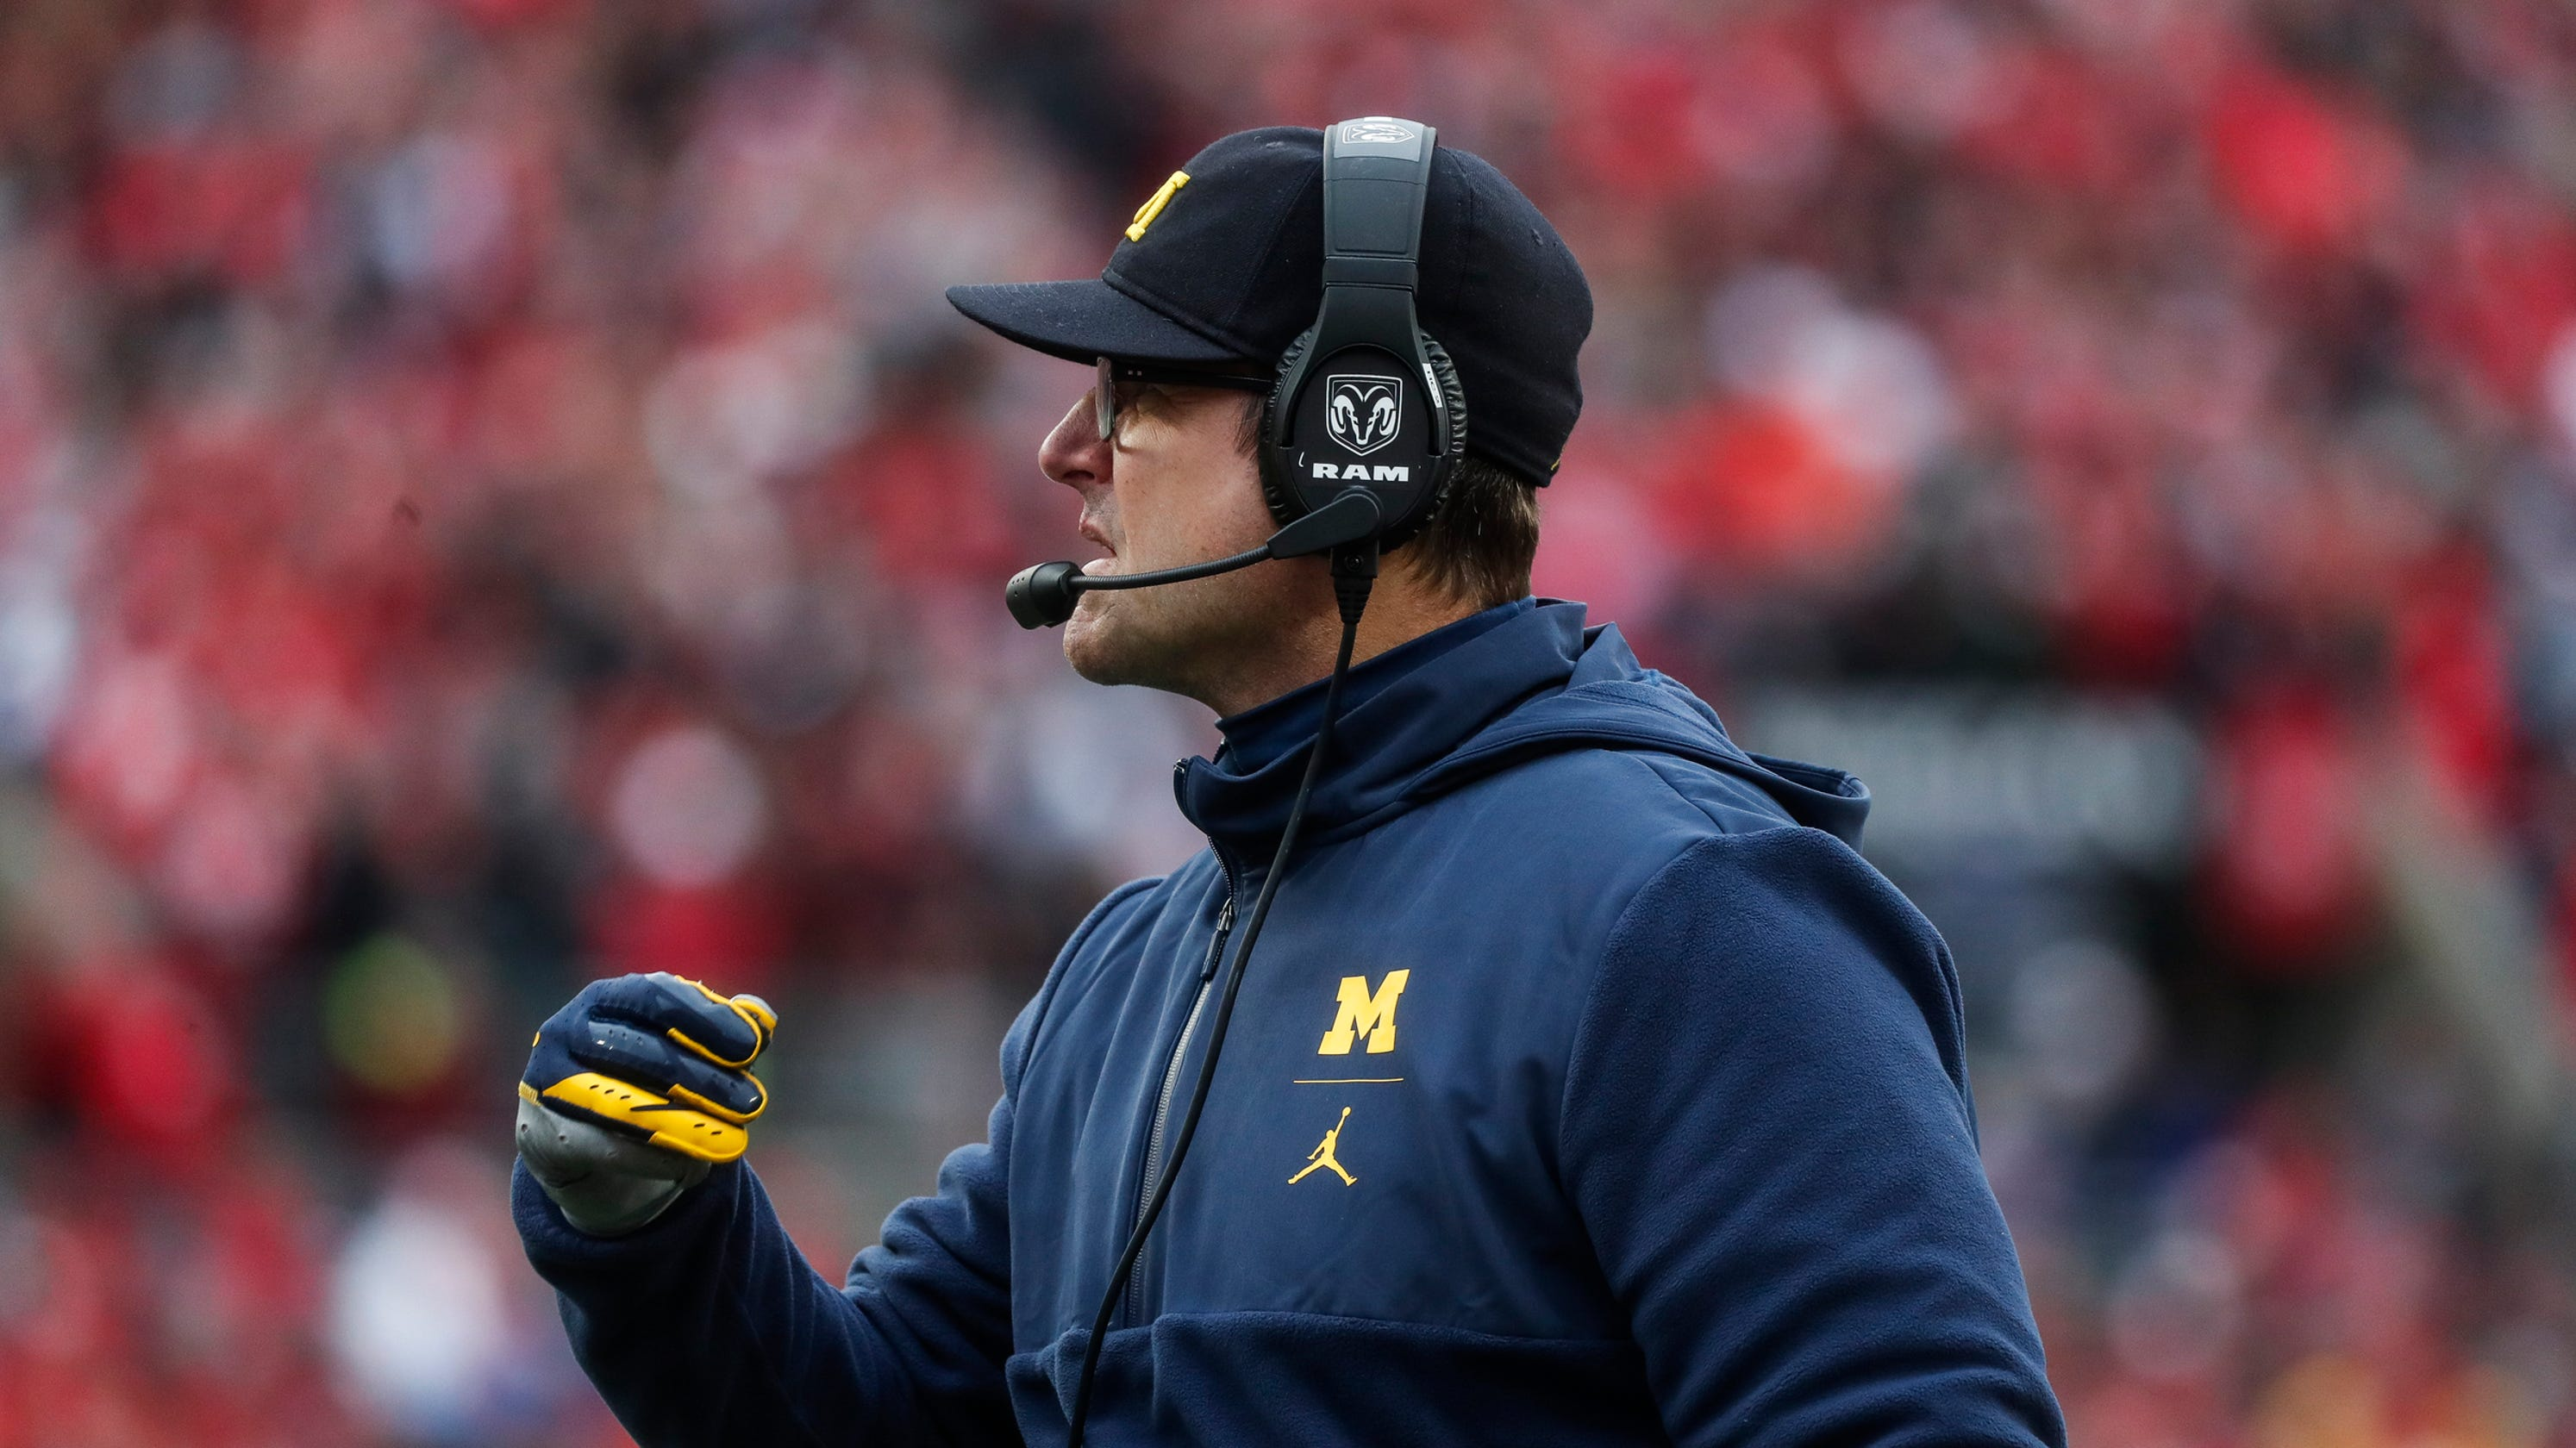 Jim Harbaugh's Michigan remains allergic to bright lights